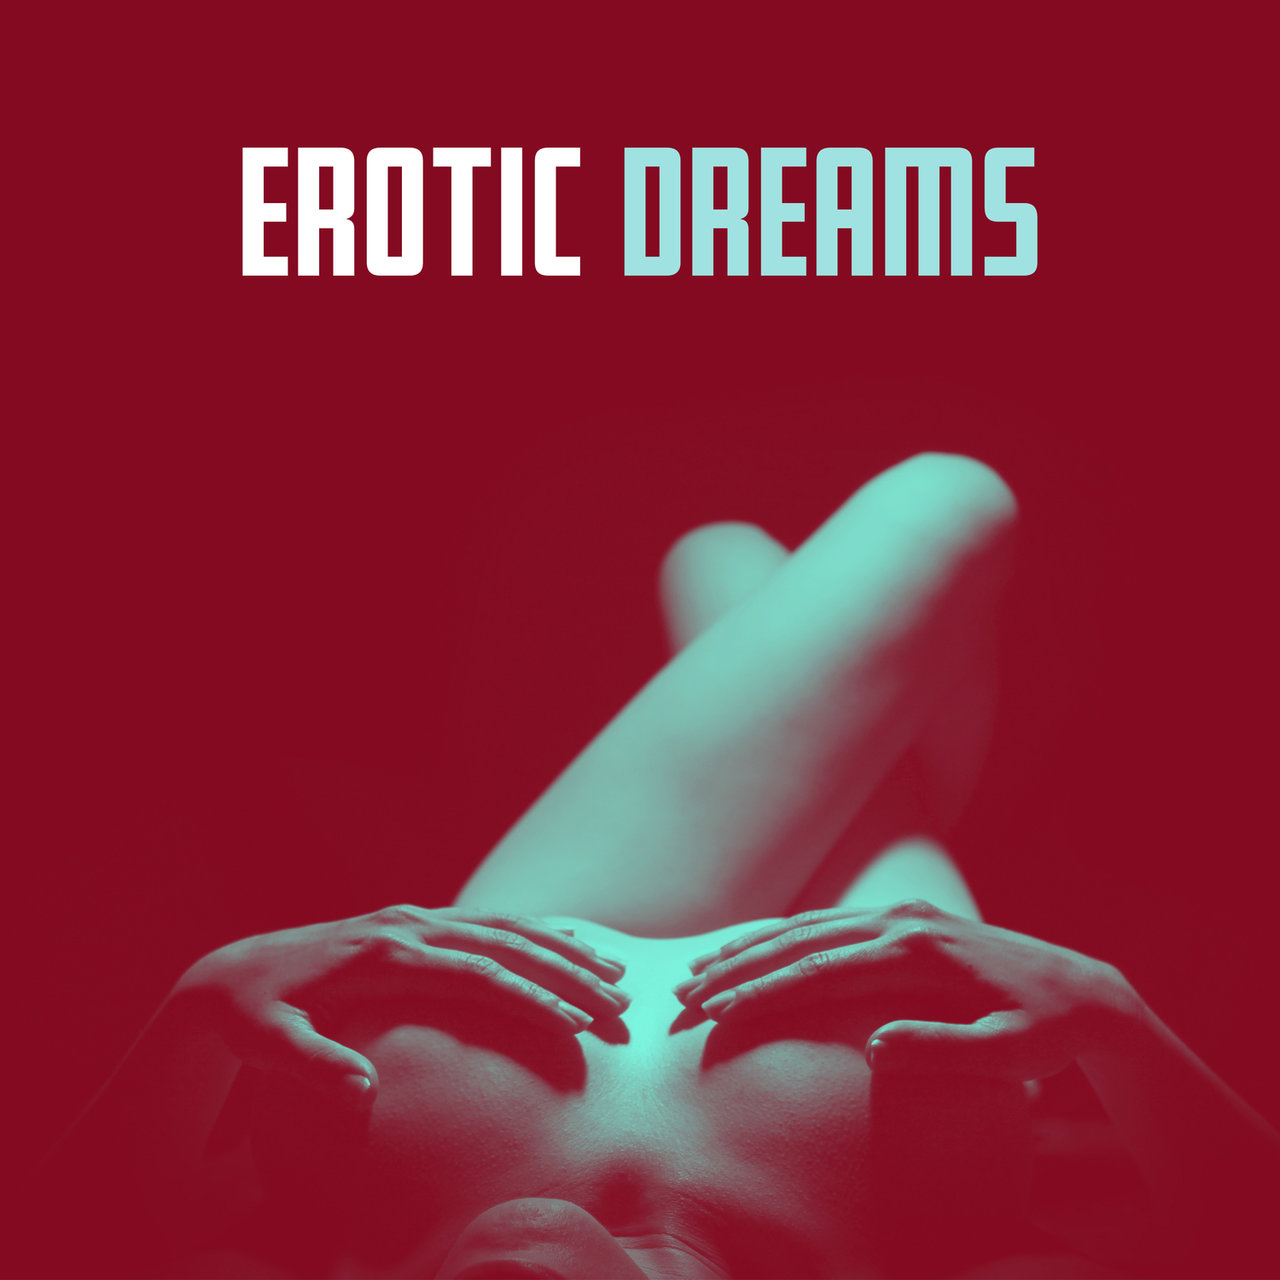 Erotic dreams